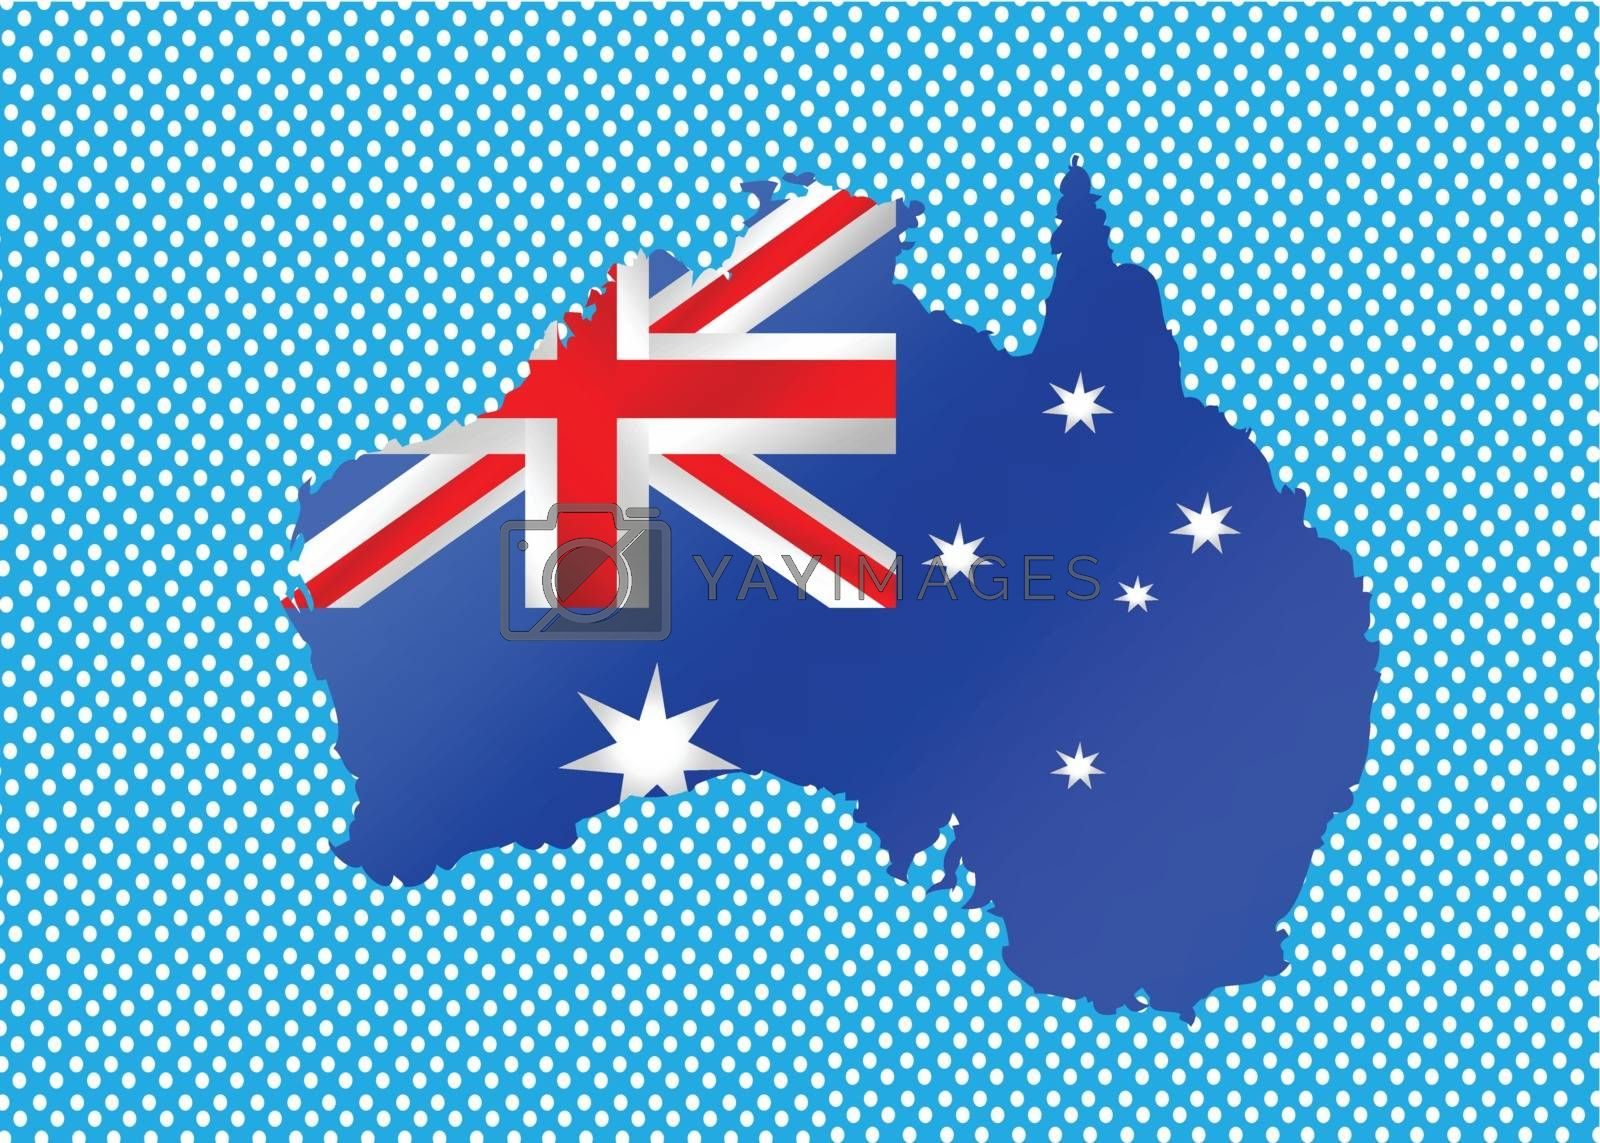 Map and flag of Australia idea design by kiddaikiddee